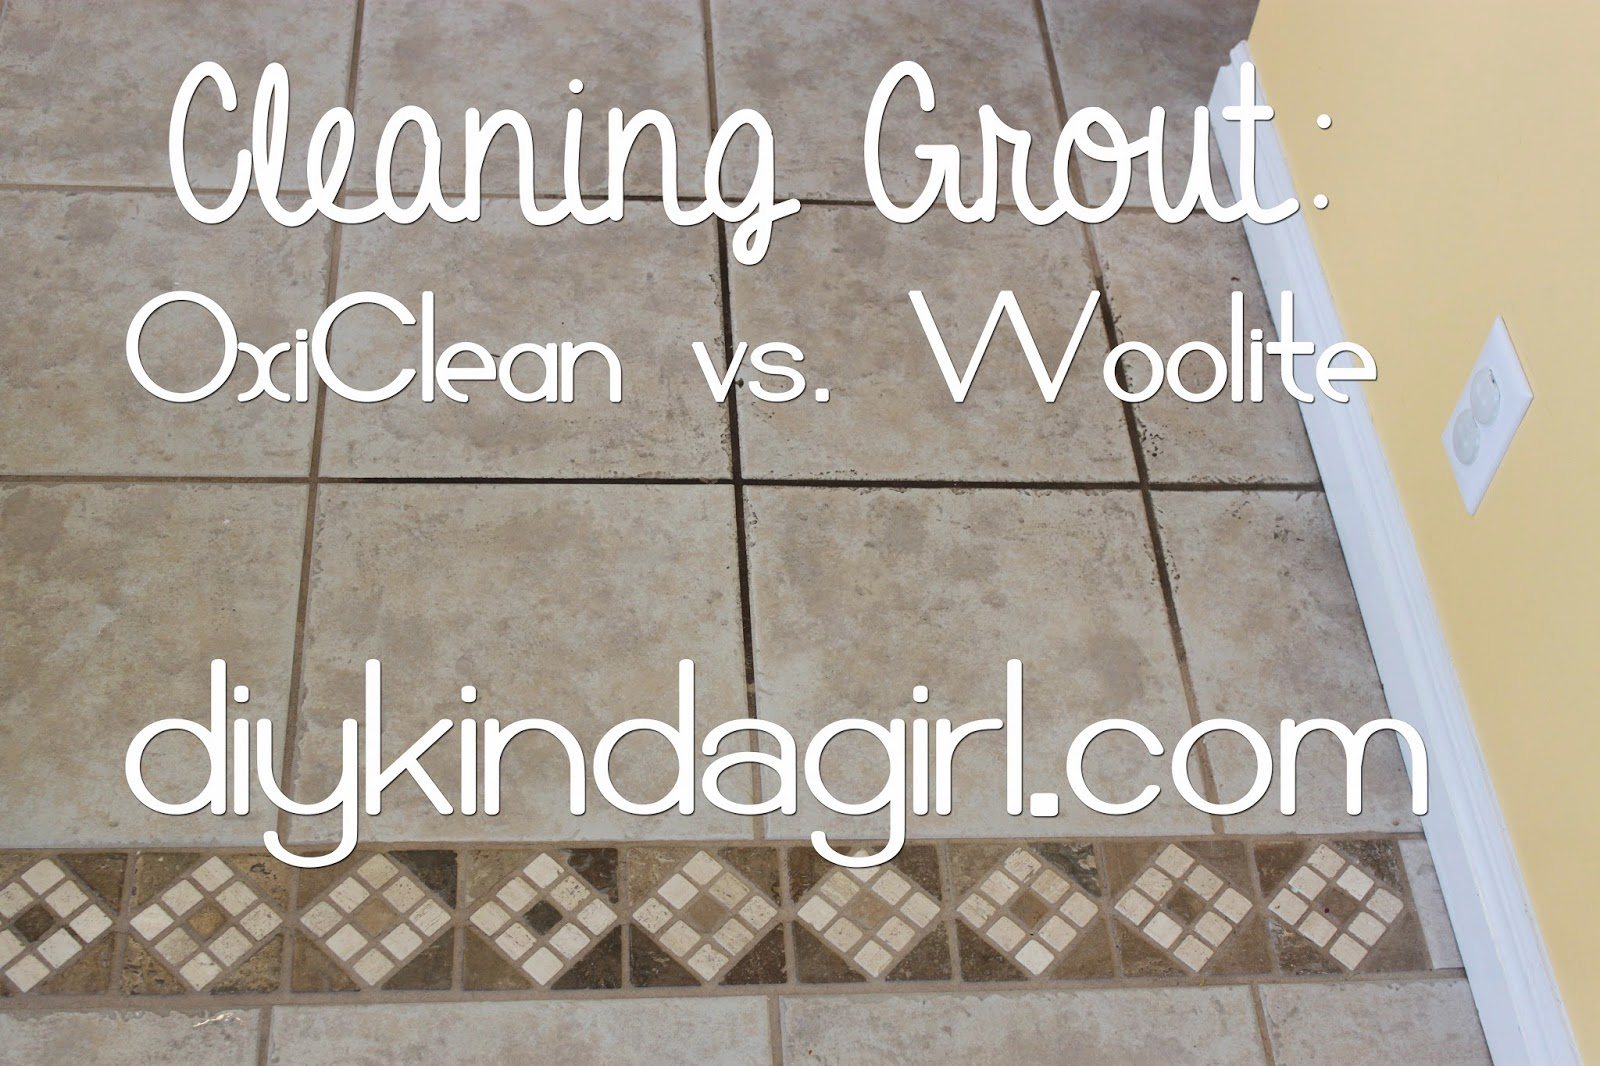 Diy kinda girl diy household tip cleaning grout oxiclean vs diy household tip cleaning grout oxiclean vs woolite dailygadgetfo Choice Image